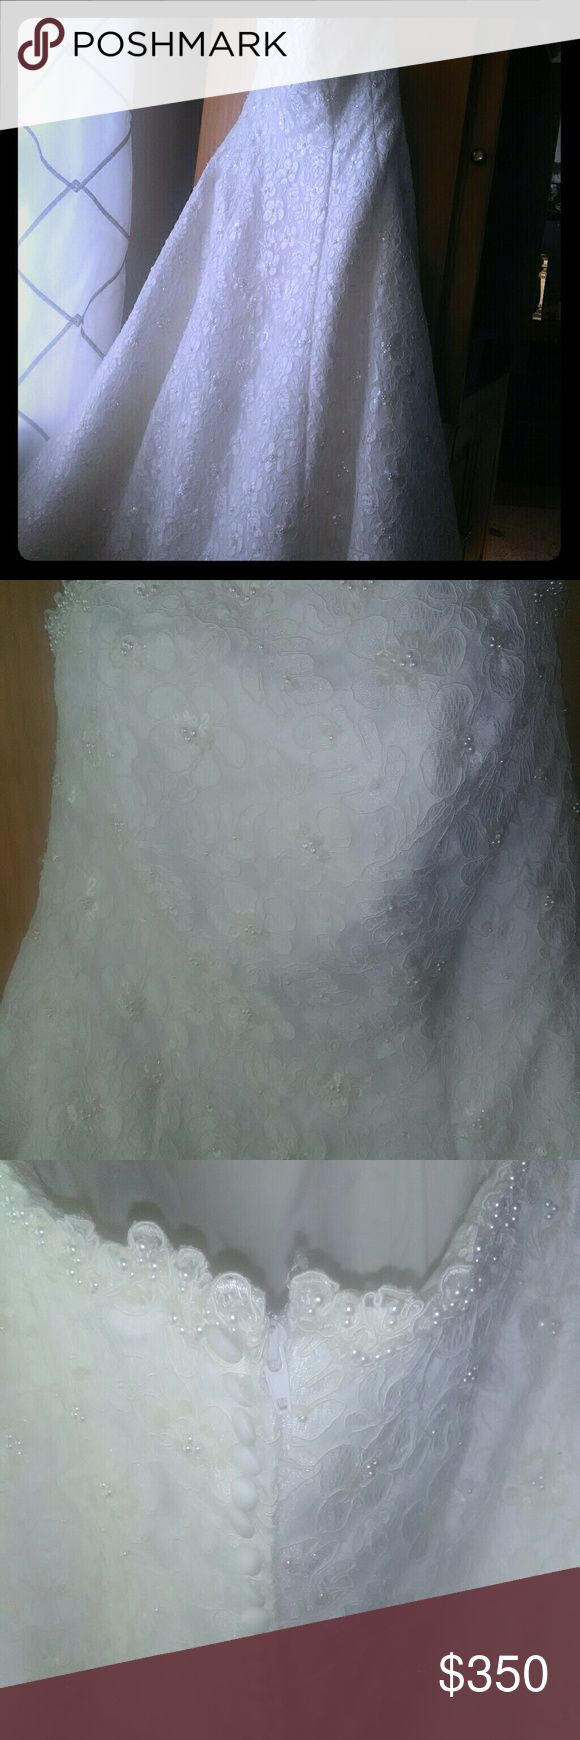 David's Bridal Wedding Gown Ivory,lace with pearls,strapless,bustle David's Bridal Dresses Wedding